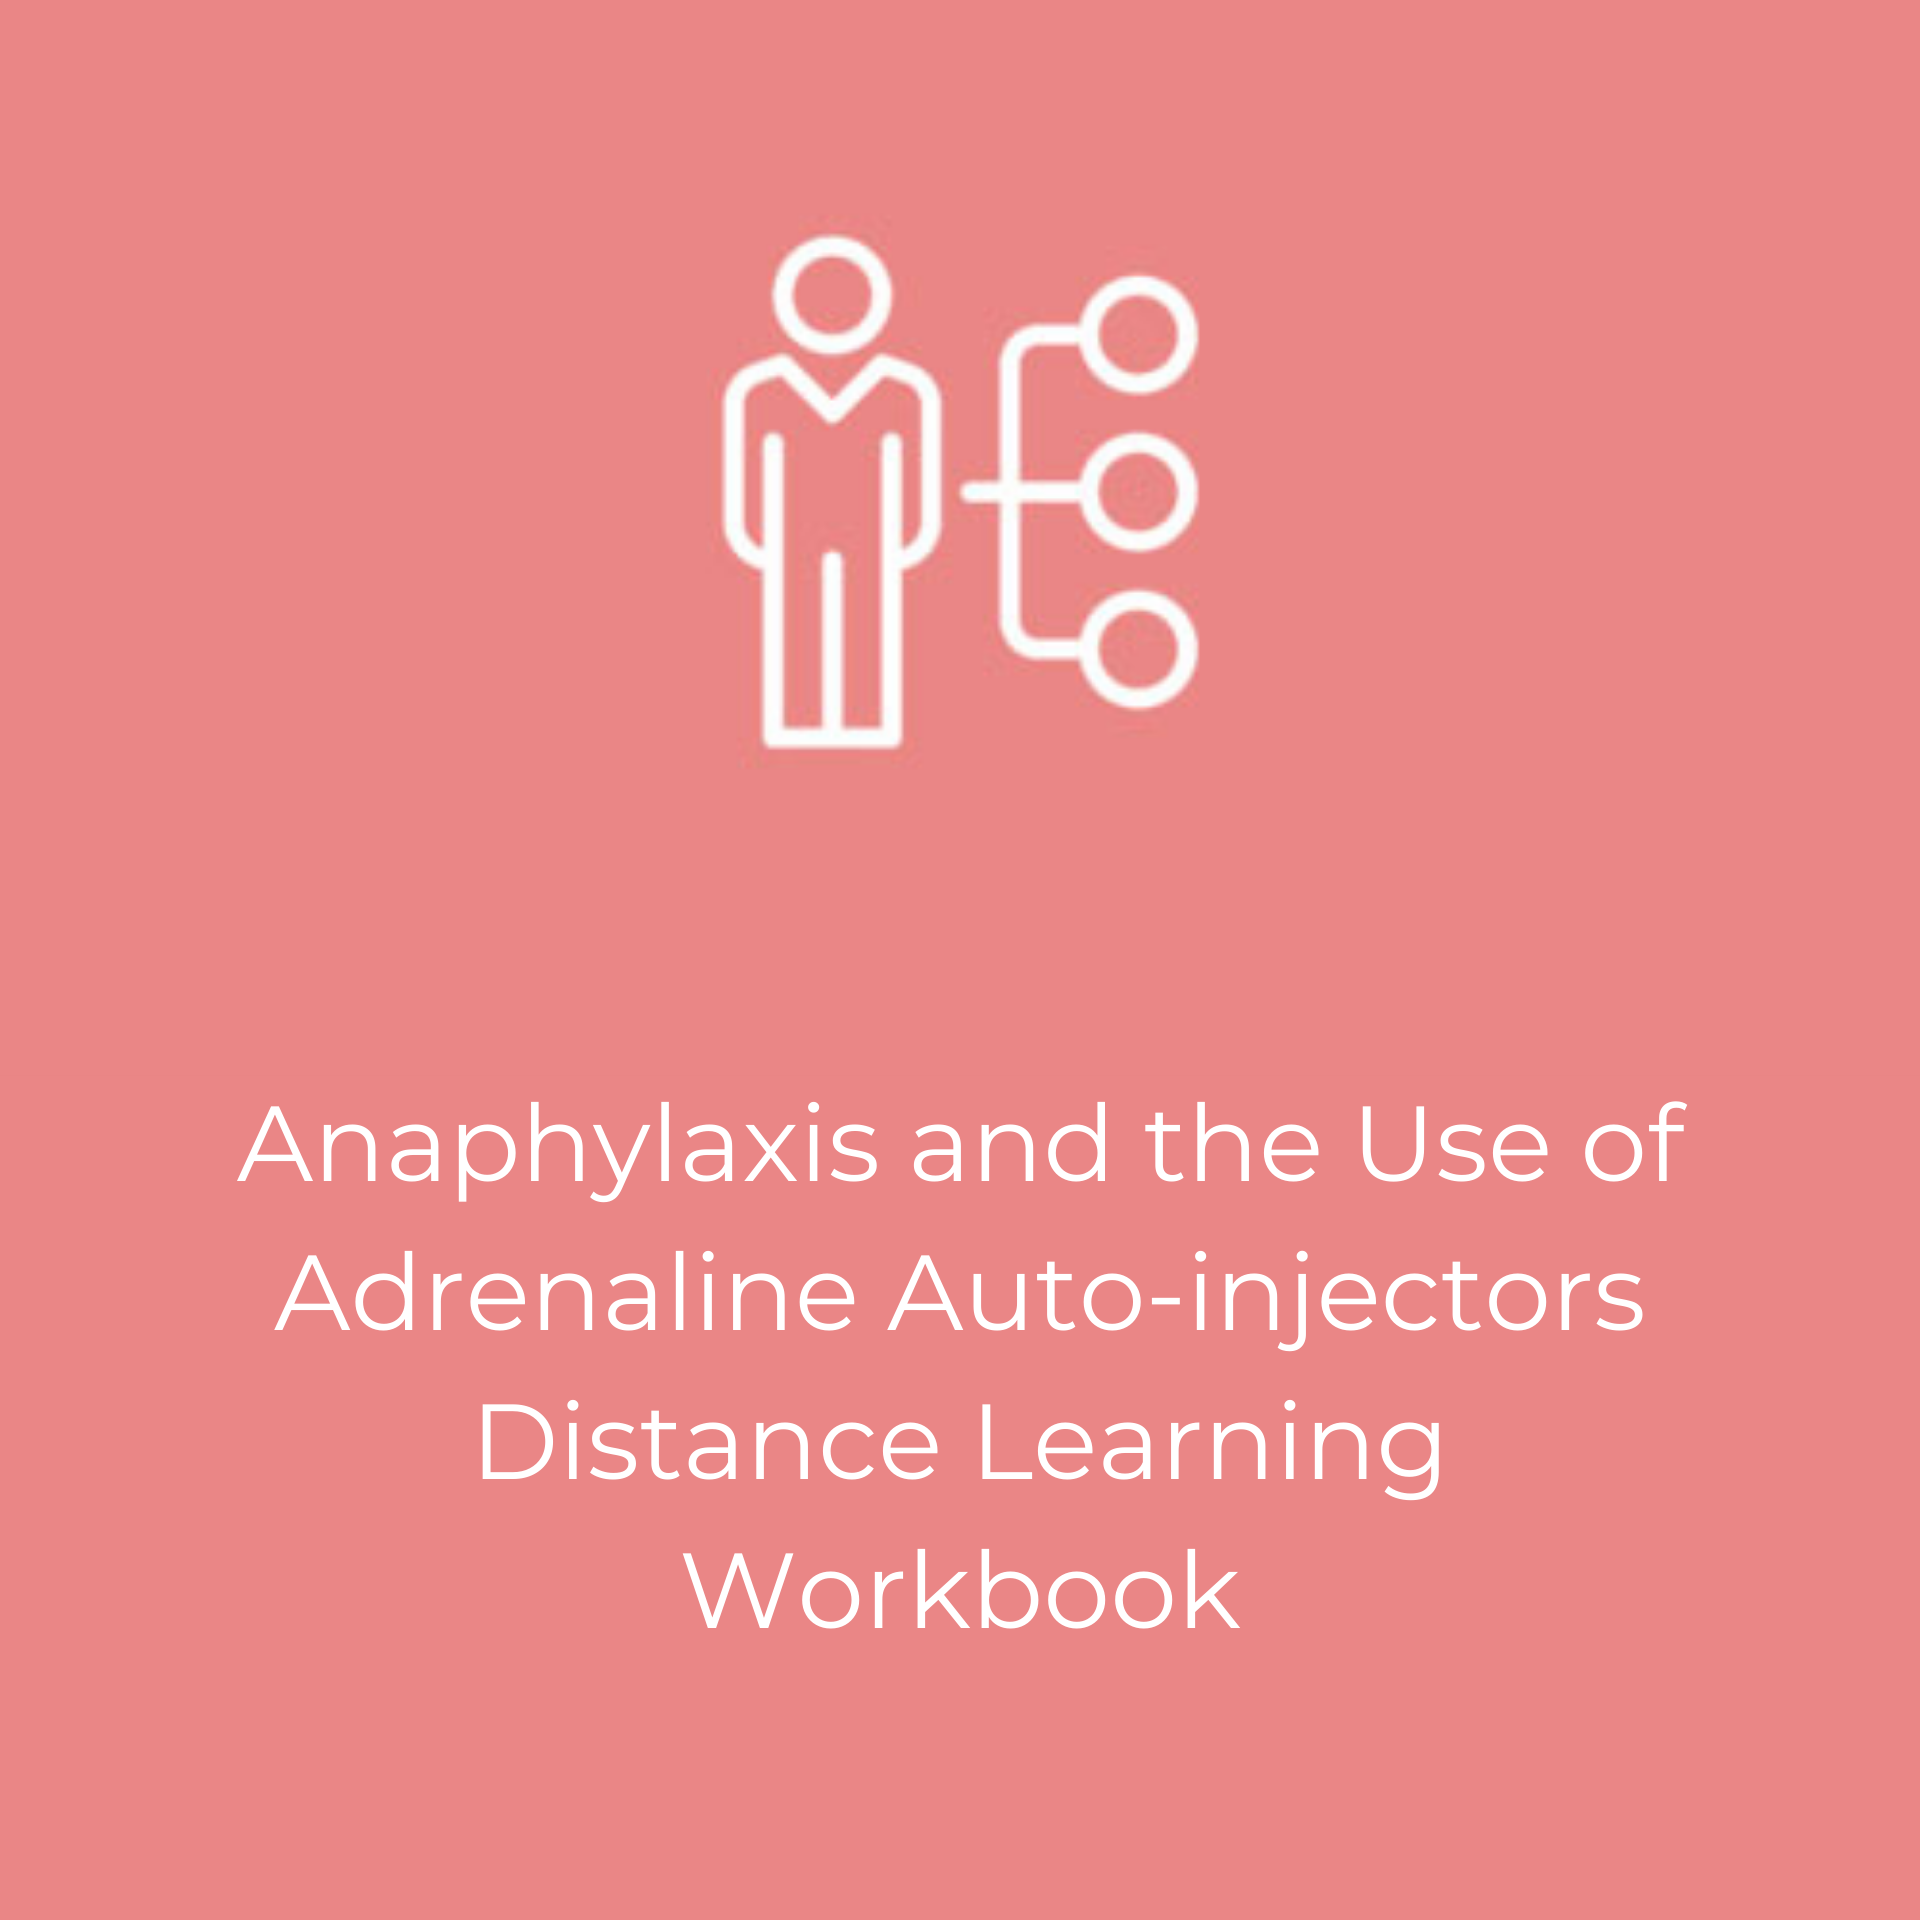 Anaphylaxis and the Use of Adrenaline Auto-injectors Distance Learning Workbook